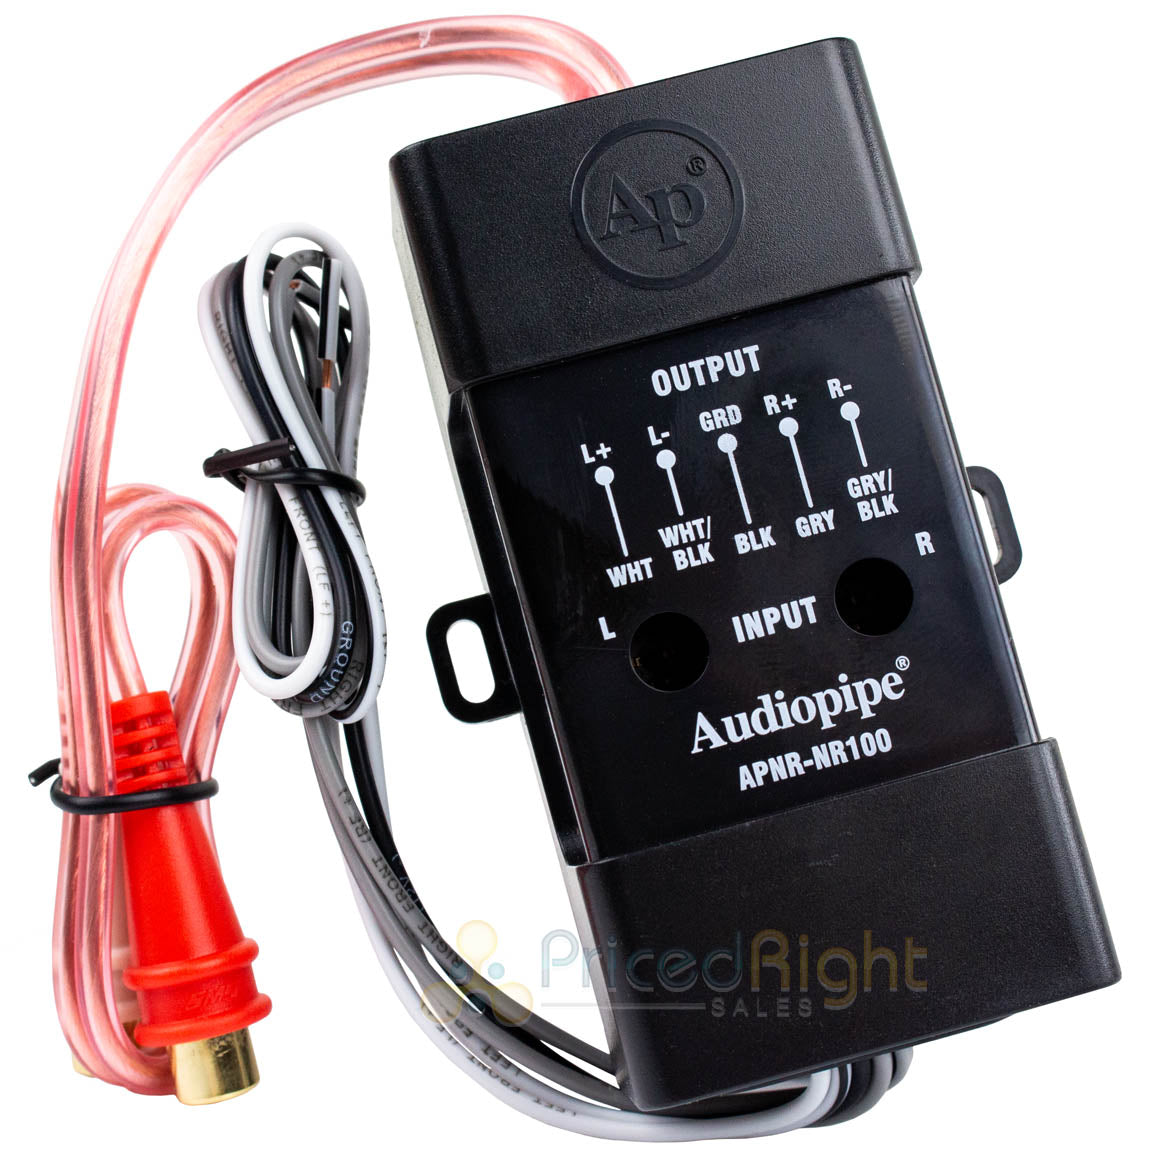 Audiopipe RCA Line Output Converter Power Amp Adapter Hi Low Impedance  NR100 Audiopipe RCA Line Output Converter Power Amp Adapter Hi Low  Impedance